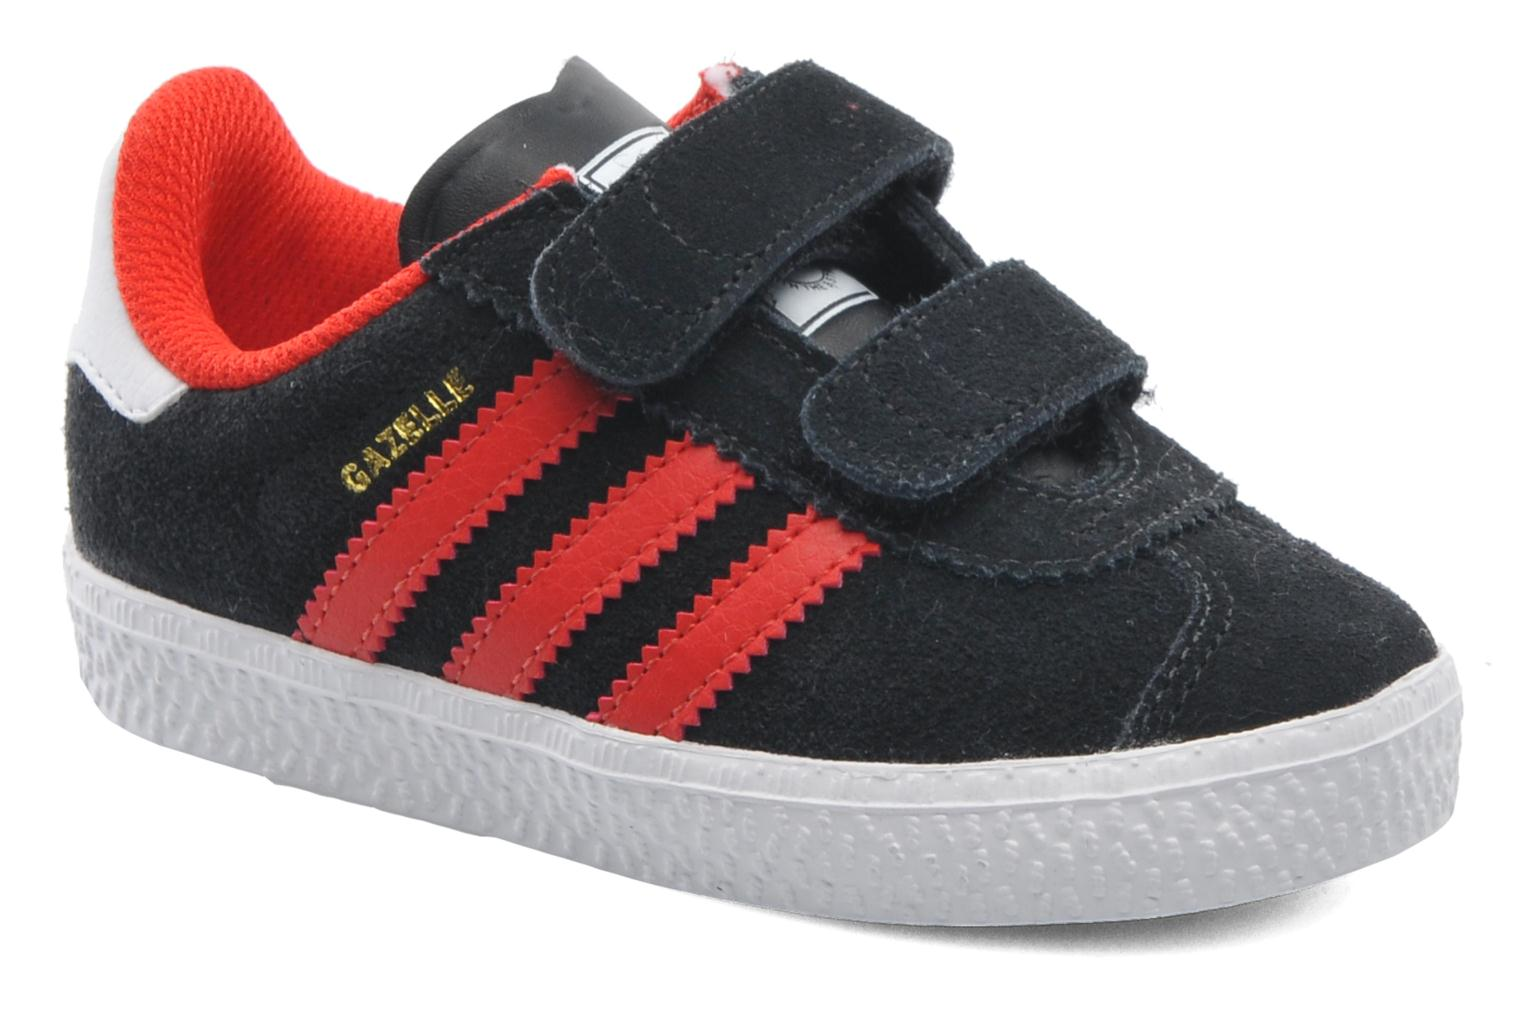 Adidas Gazelle 2 White/Black Leather Trainers